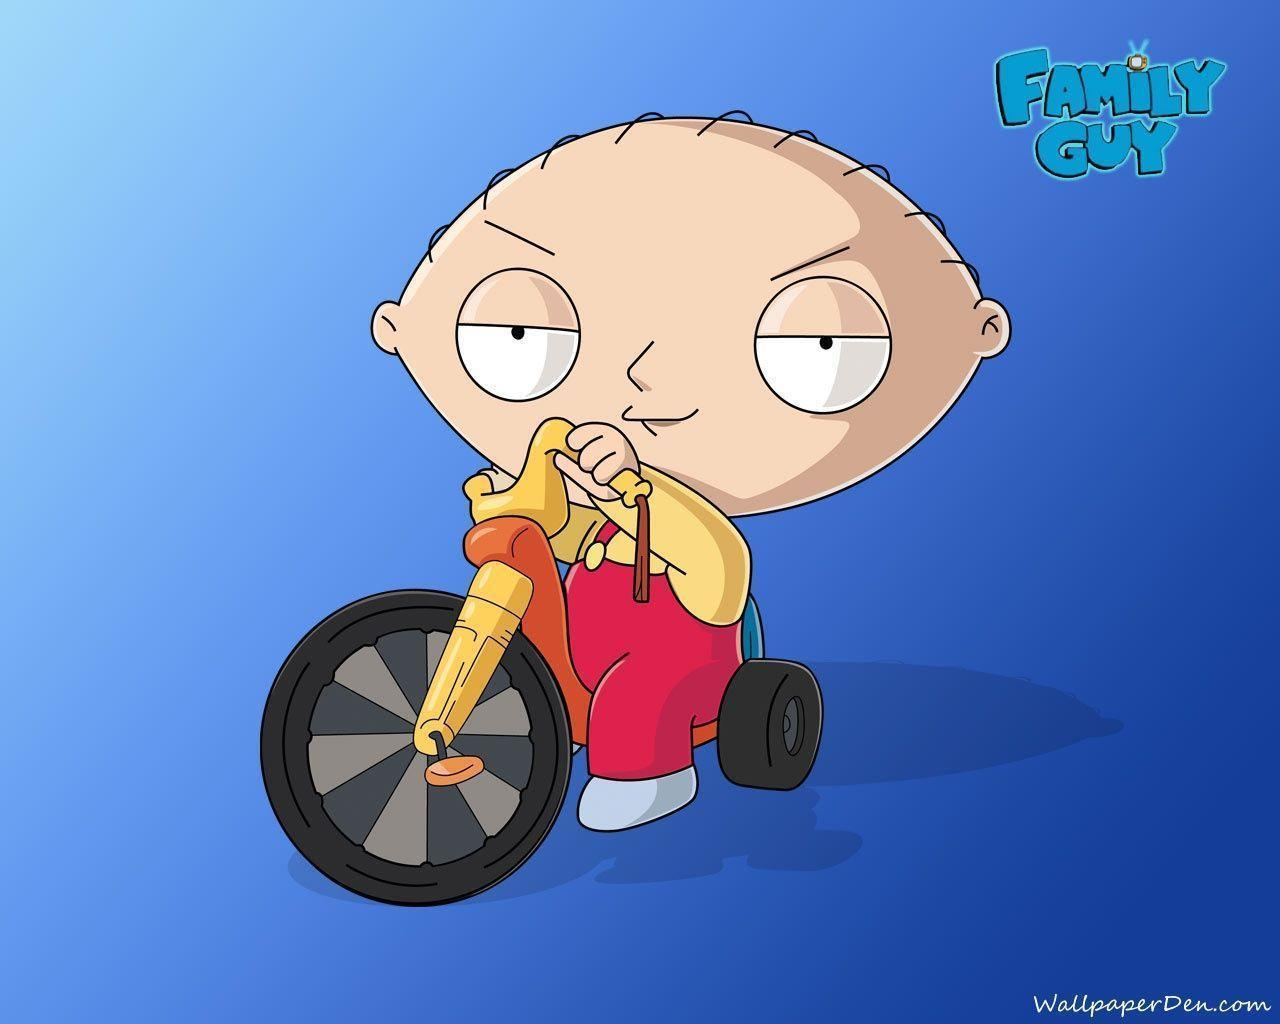 Stewie wallpapers wallpaper cave - Family guy stewie background ...